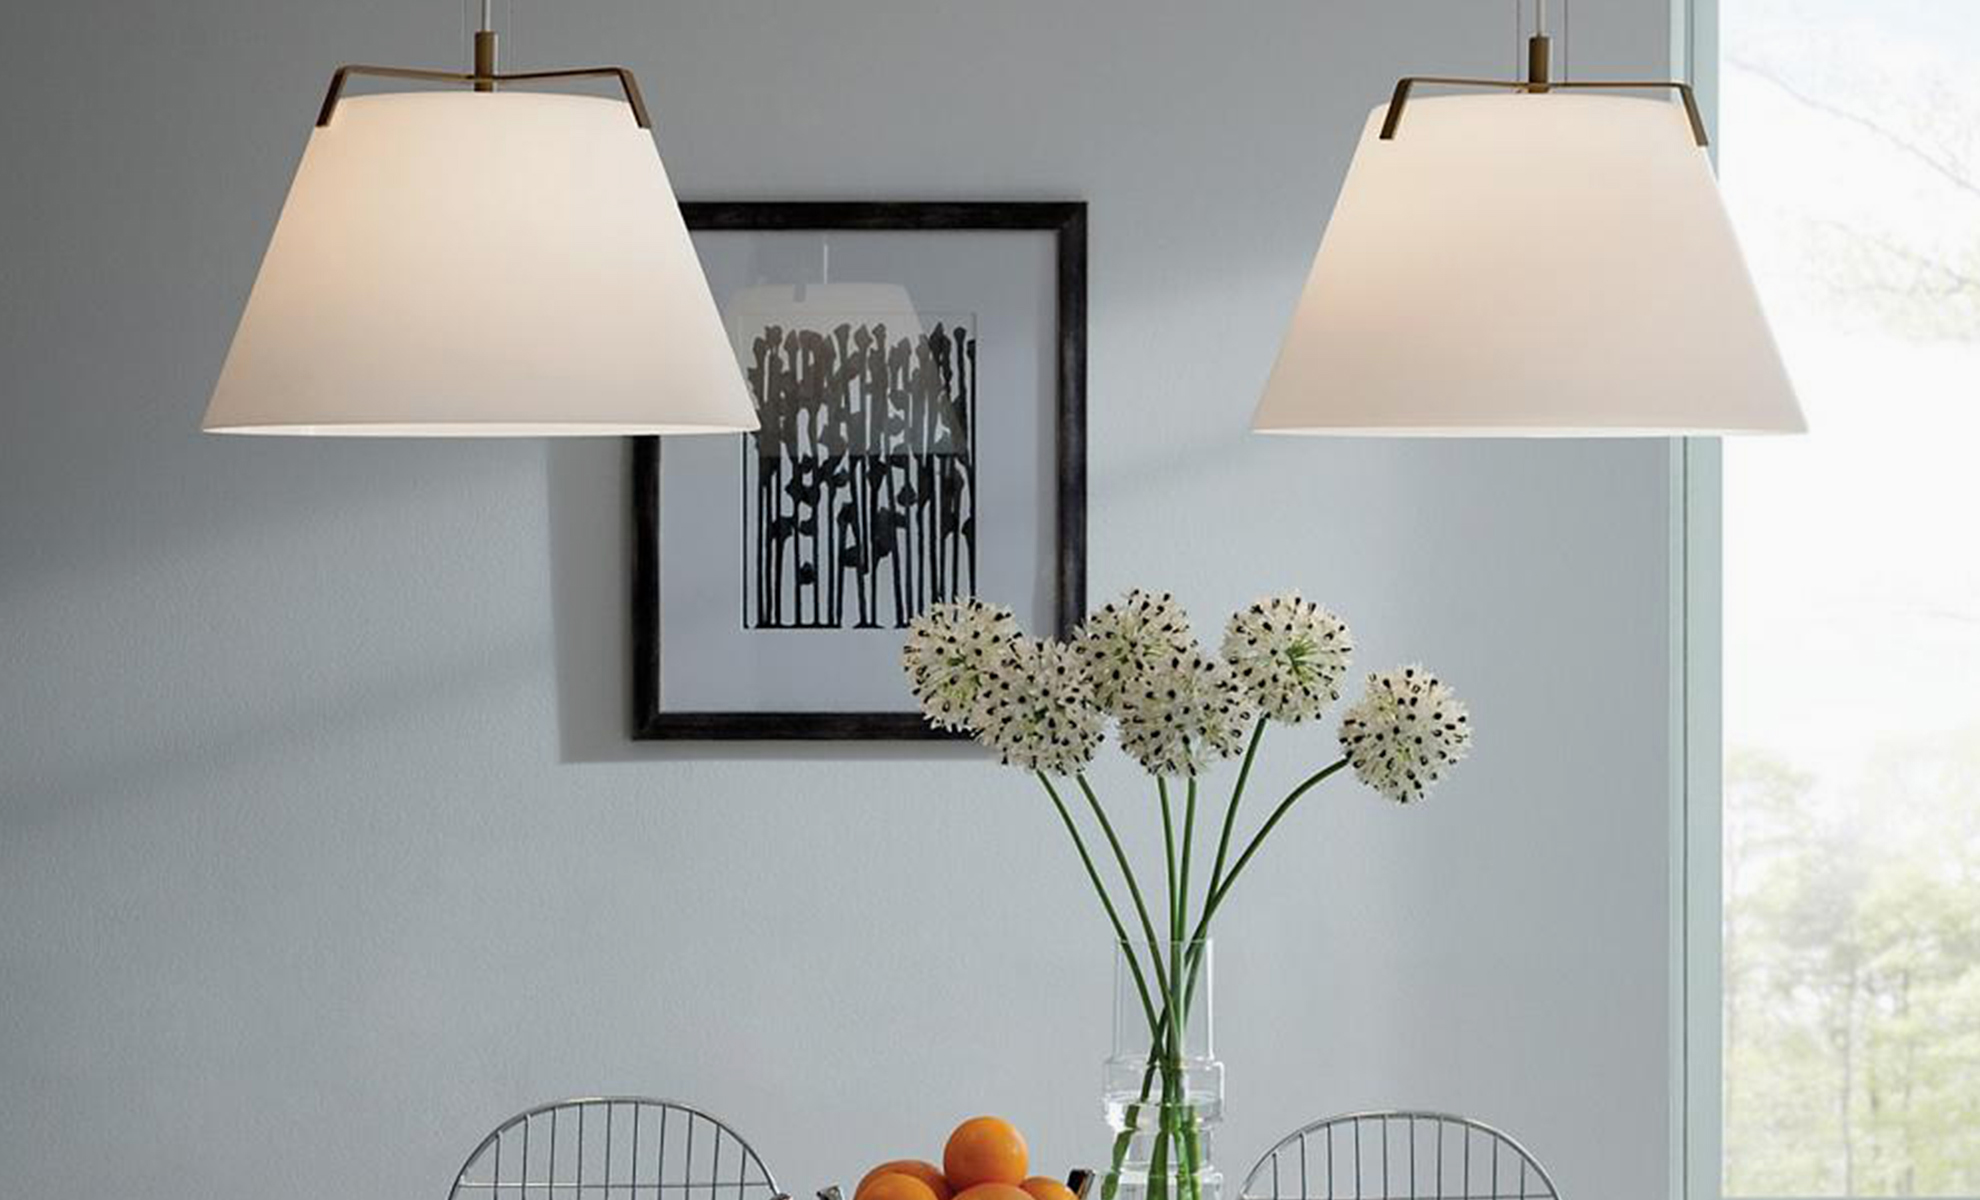 Dining Room Pendant Lighting Ideas Advice at Lumenscom